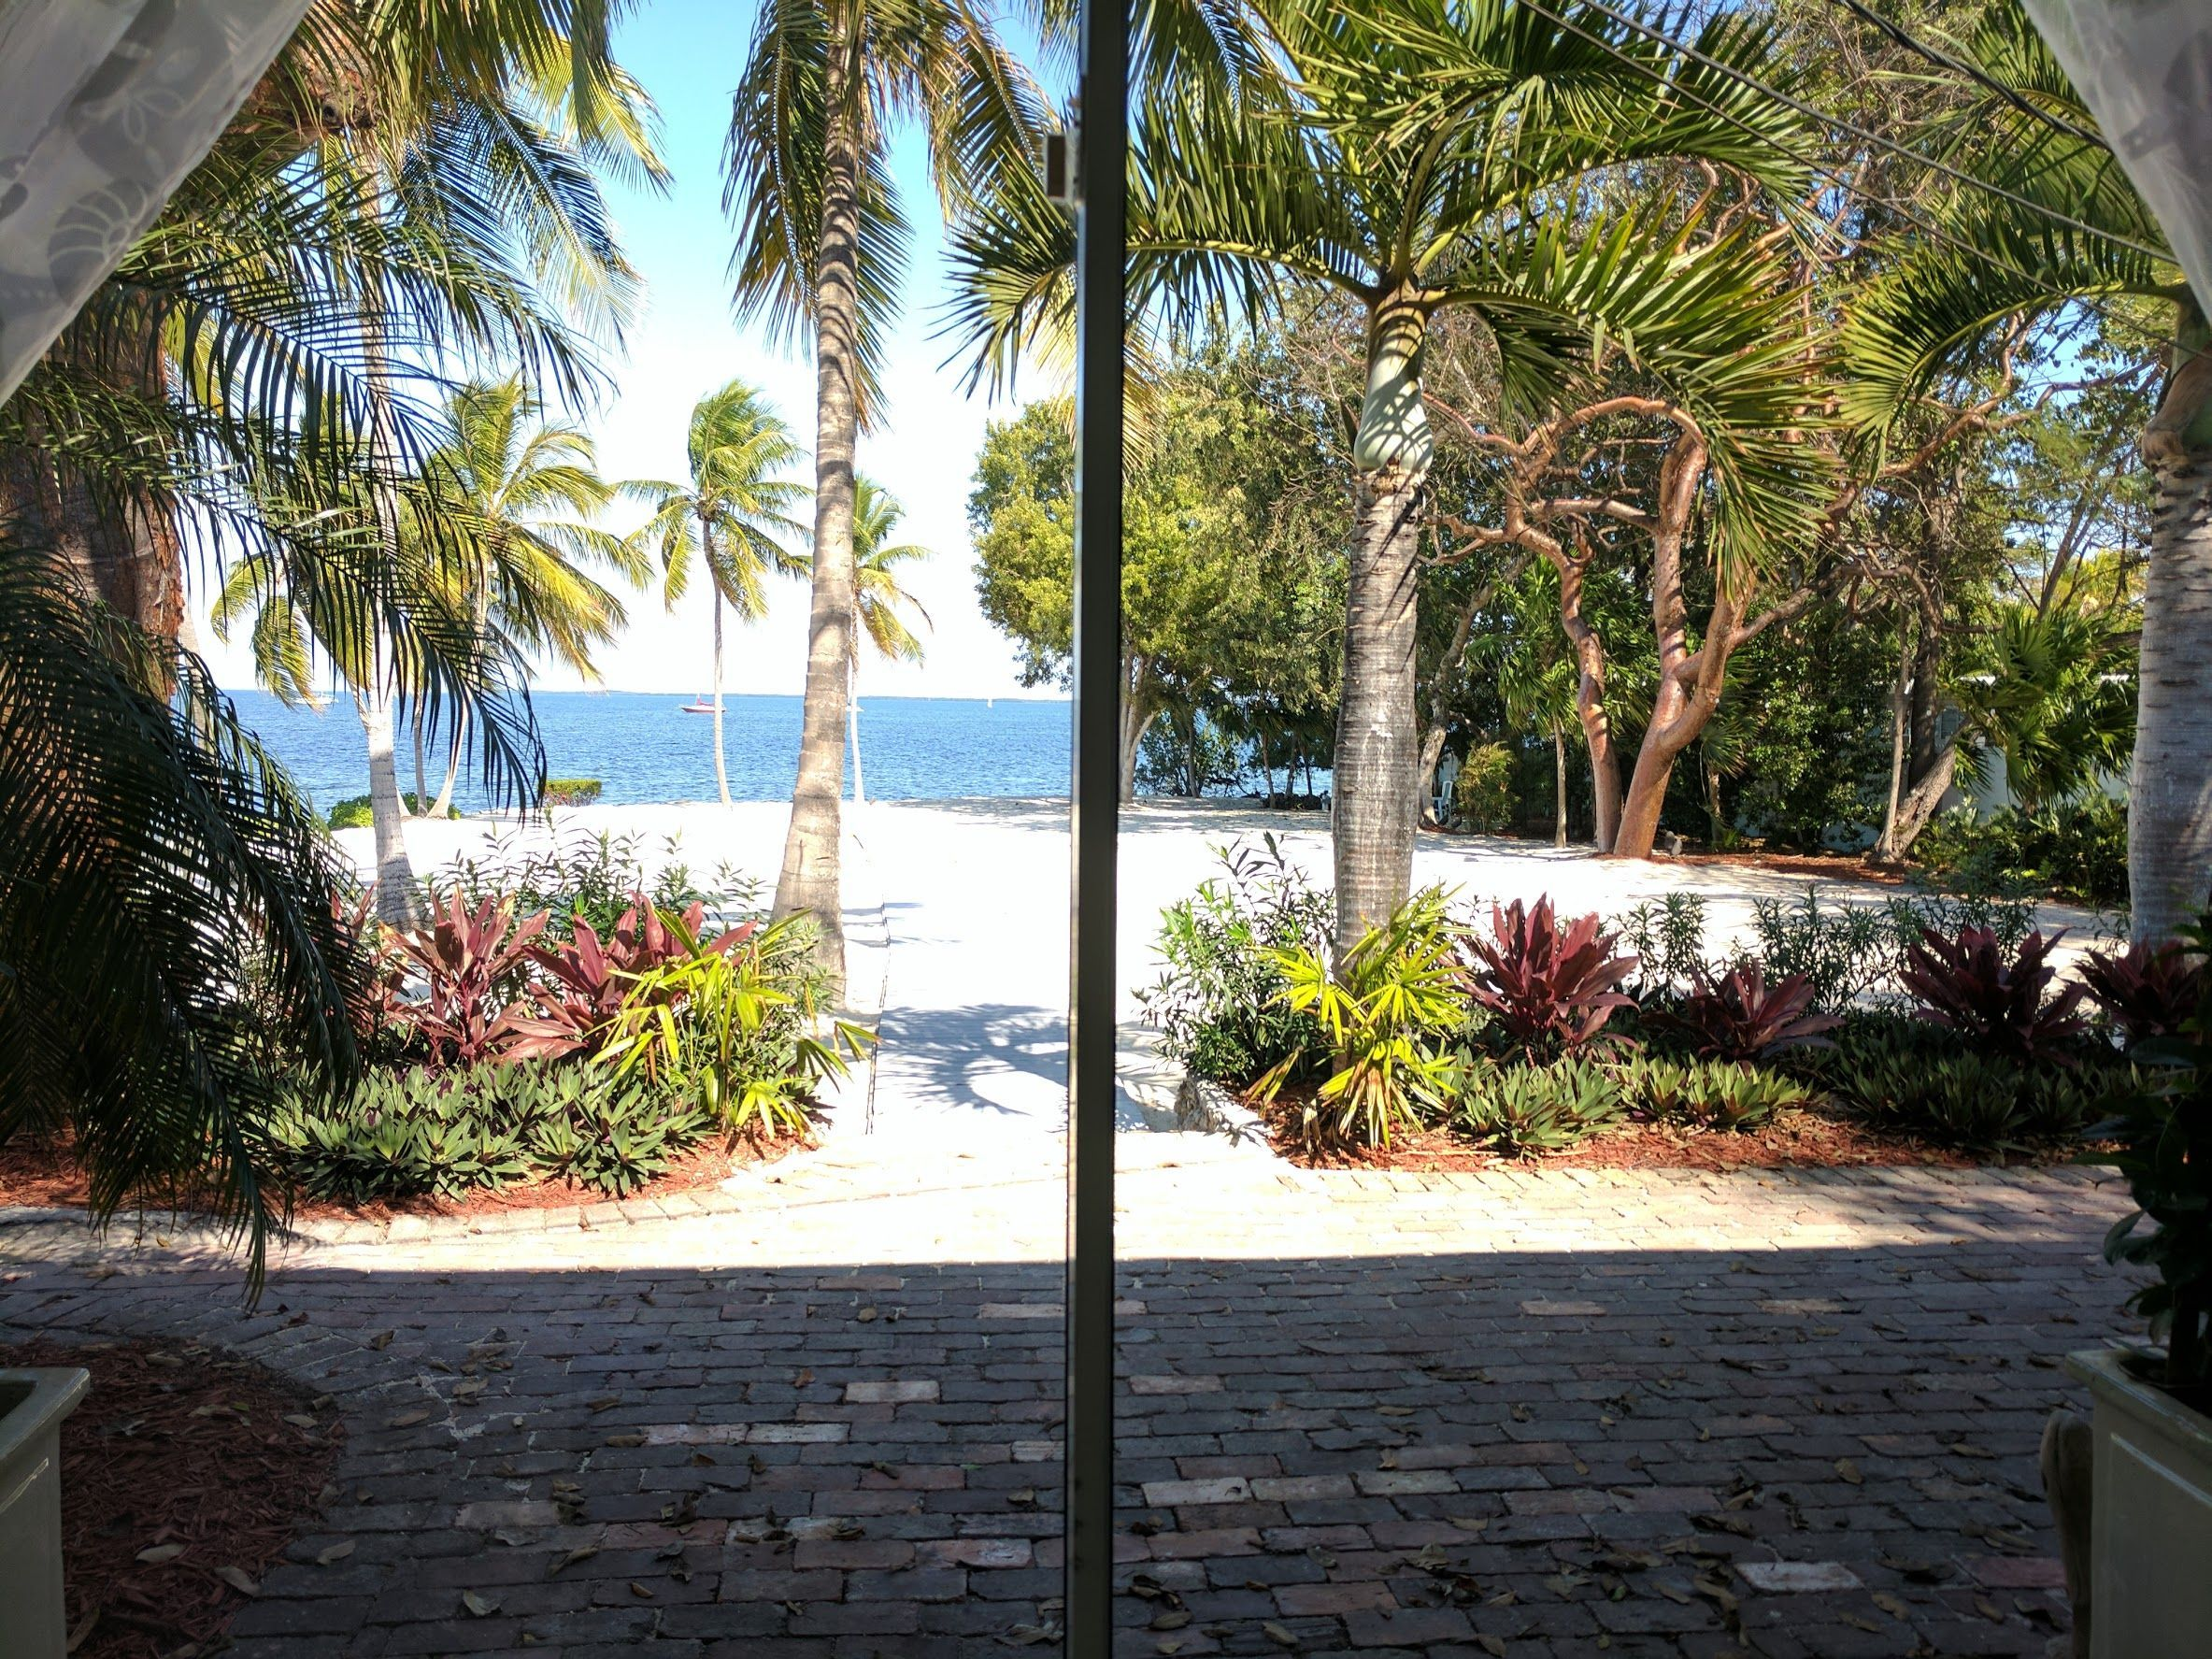 Wedding beach house  View to Ceremony site from Brideus suite very tropical ambience